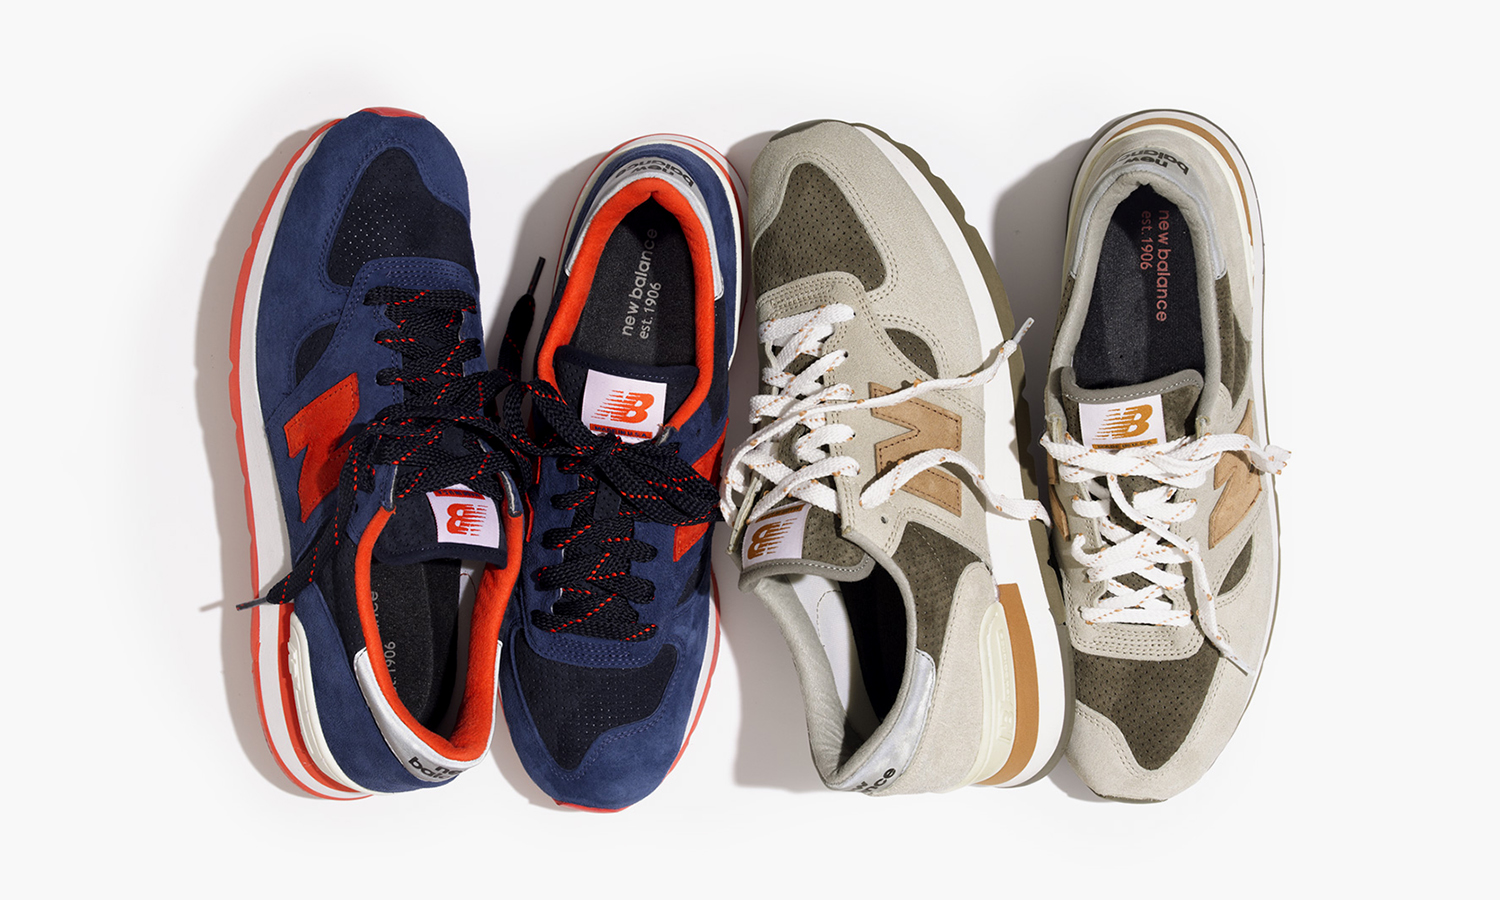 New Balance 990 V.1 Sneaker by J.Crew